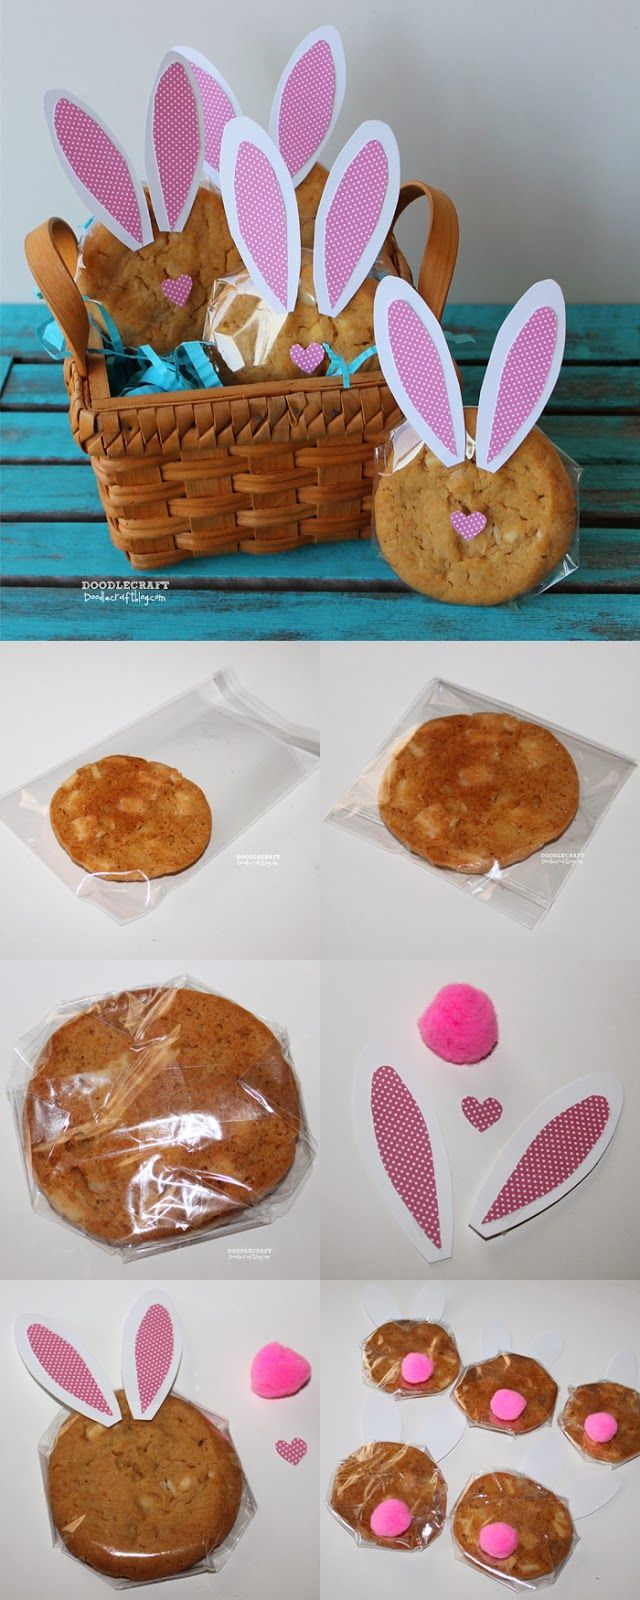 Best 25 easter gifts for kids ideas on pinterest easter baskets cookies bunny ear cutouts a basket cellophane and a fuzzy tail and youre all set for easter thanks doodlecraft negle Gallery